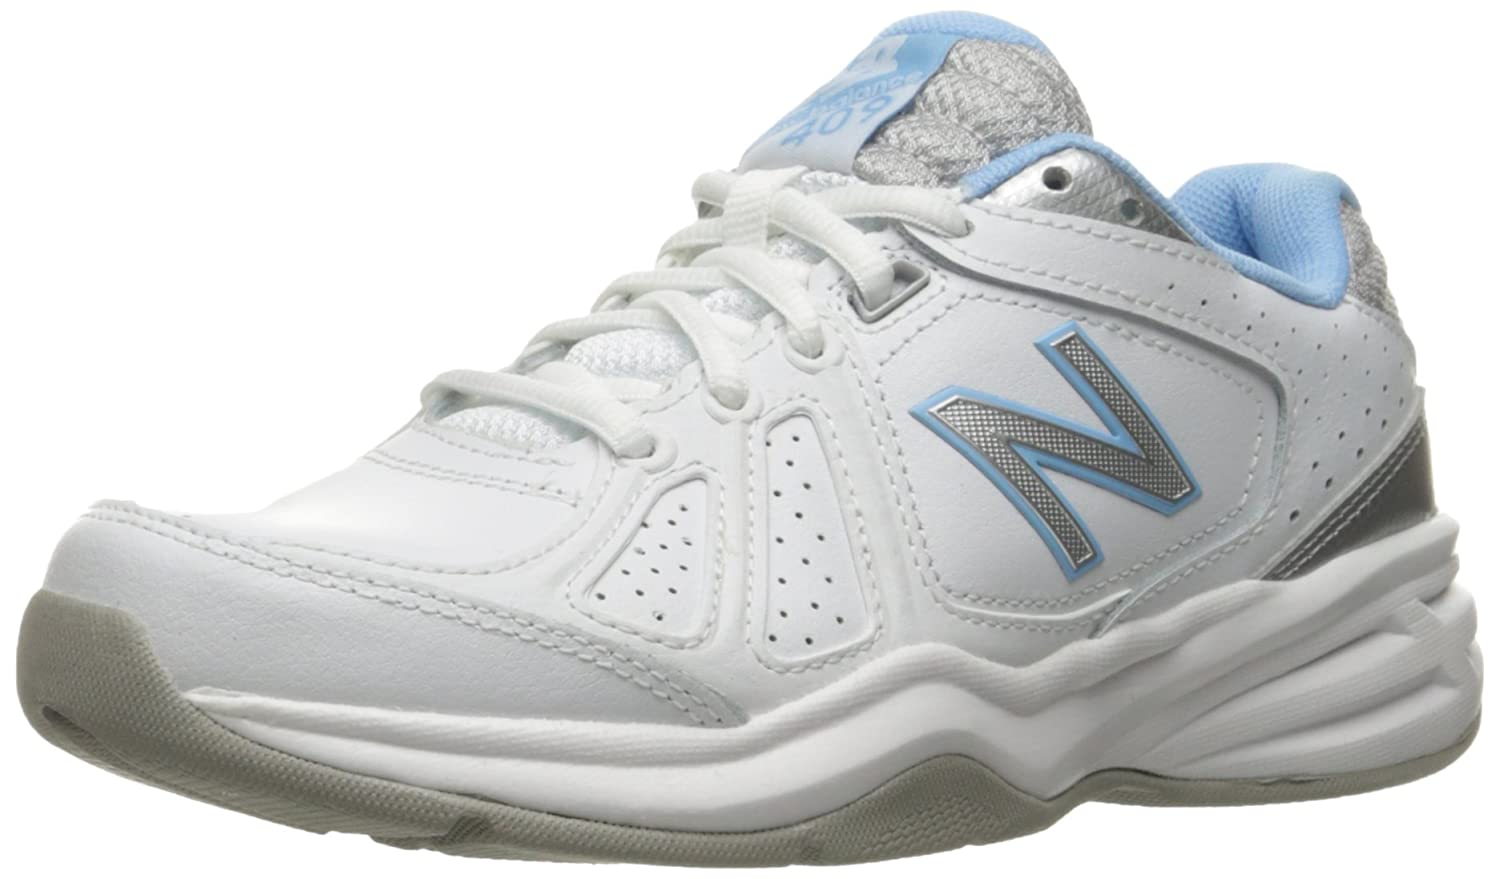 New Shoe Balance Women's WX409V3 Casual Comfort Training Shoe New B01CQVTRNQ 8.5 B(M) US|White/Blue 7779e0